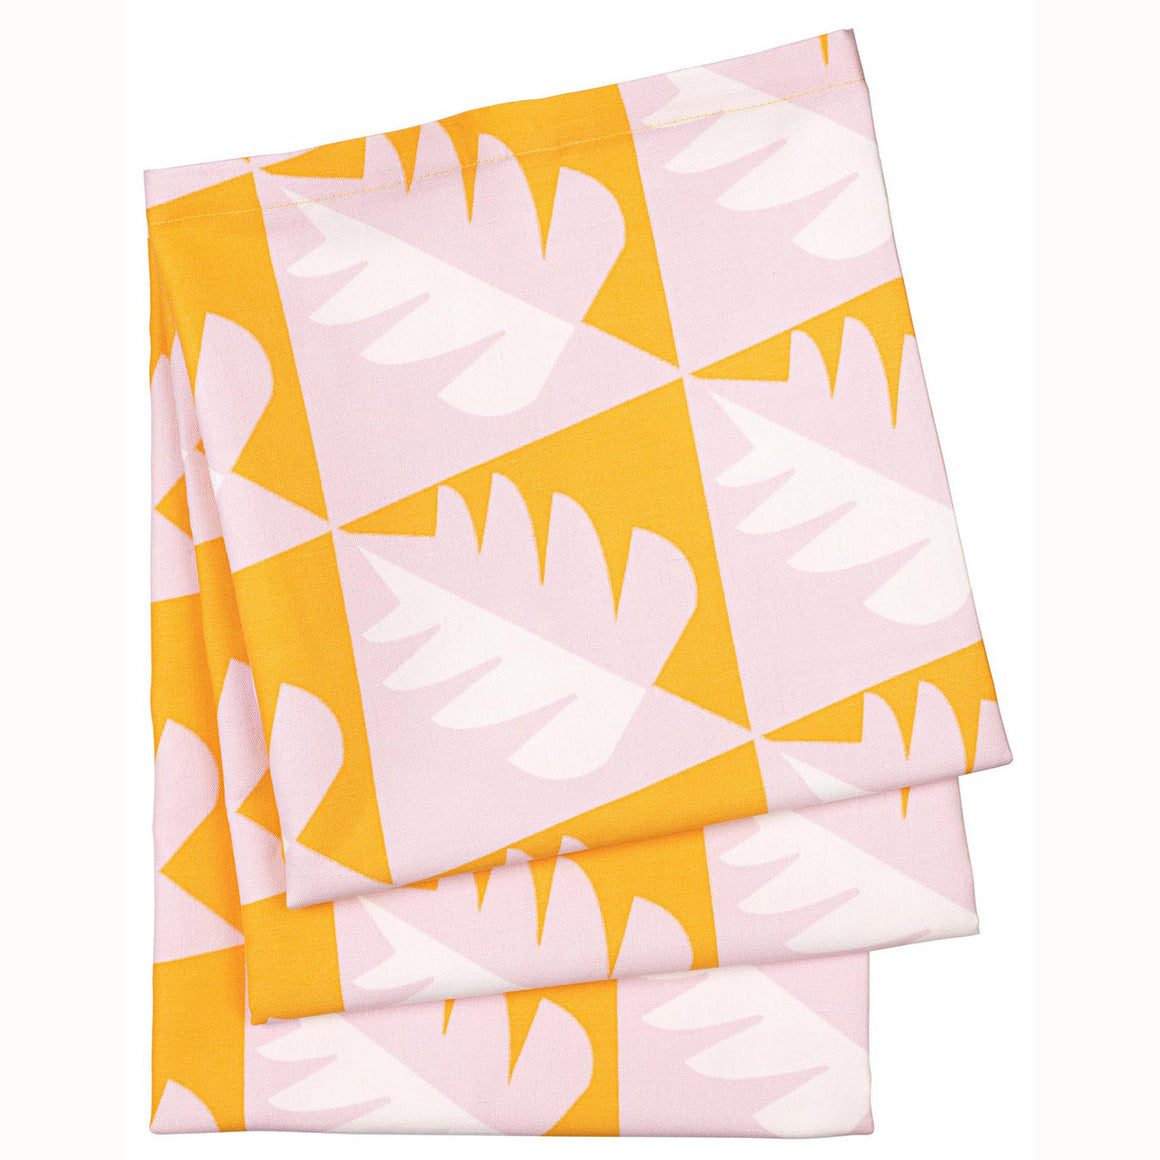 Betty Graphic Geometric Tree Pattern Tablecloth in Saffron Yellow and Pink ships from Canada (USA)